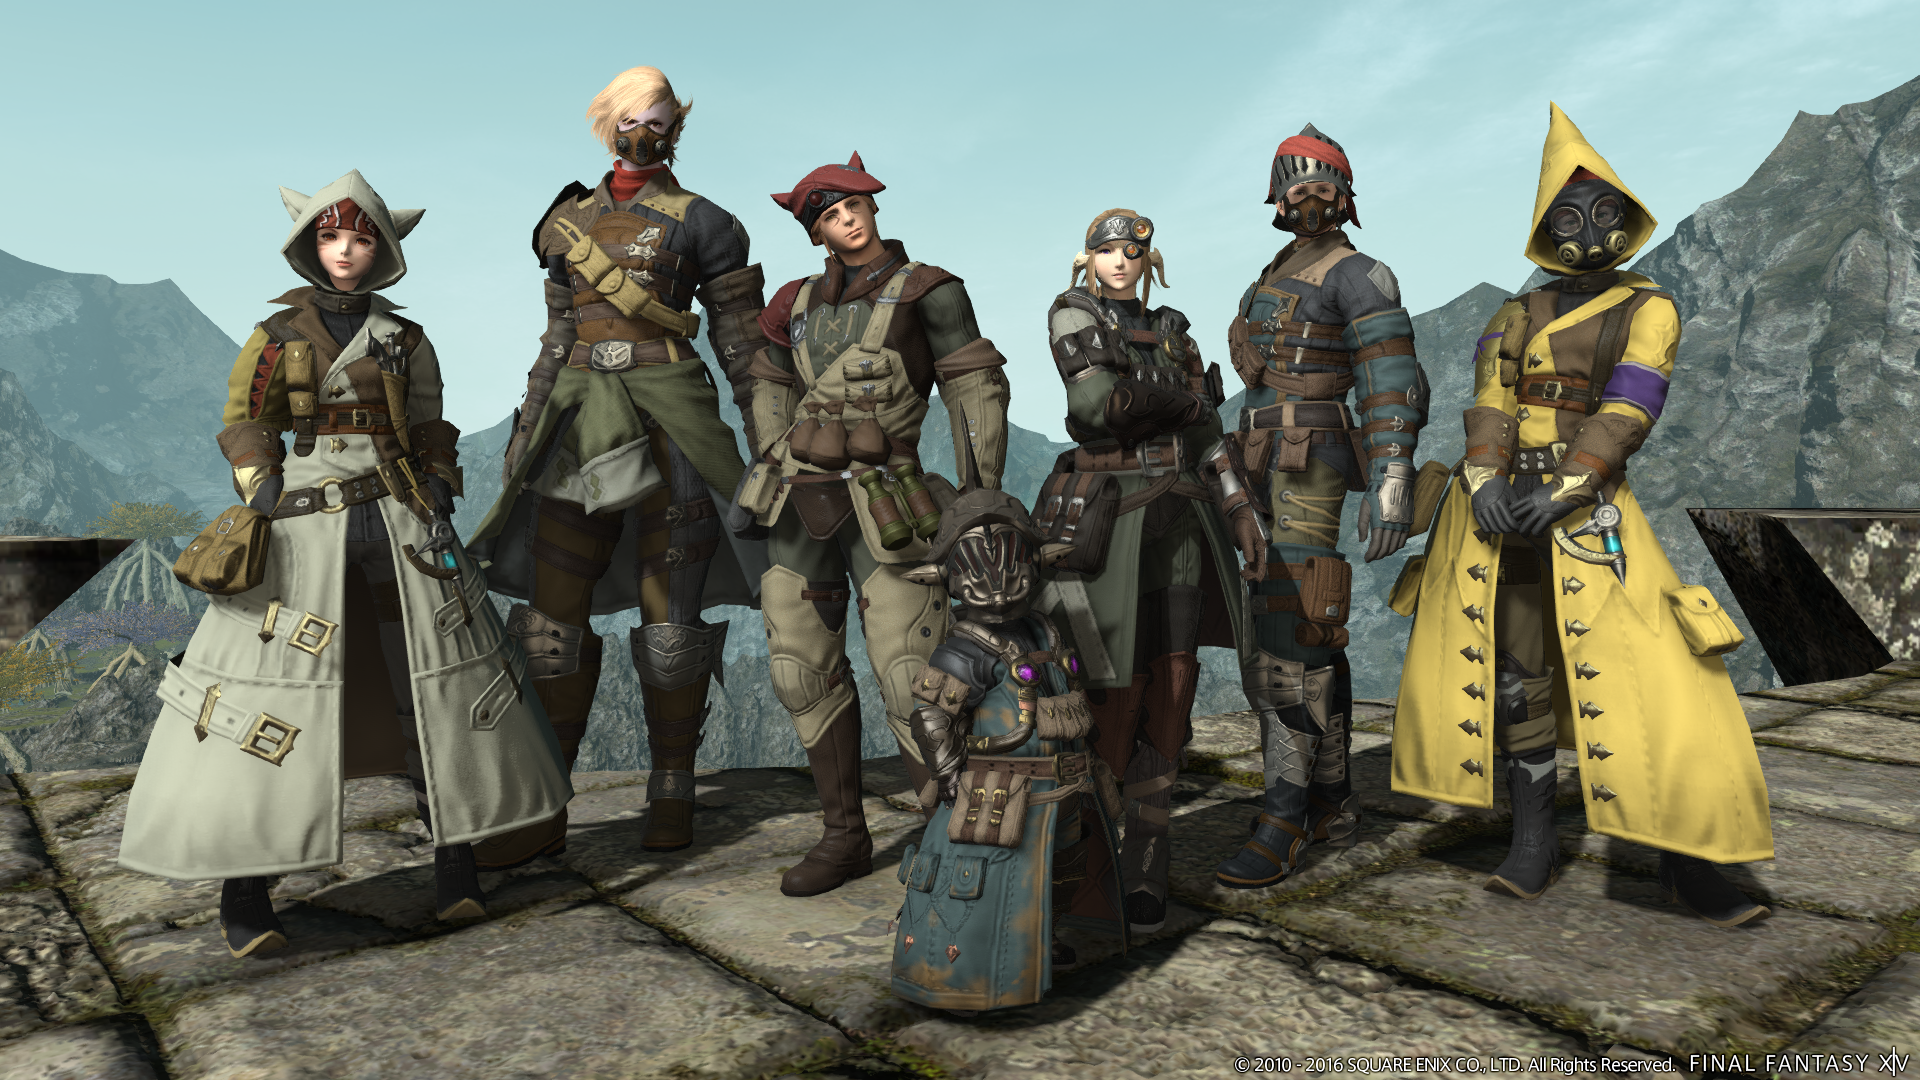 Would You Like To Design Your Own Armour Set For Final Fantasy 14?